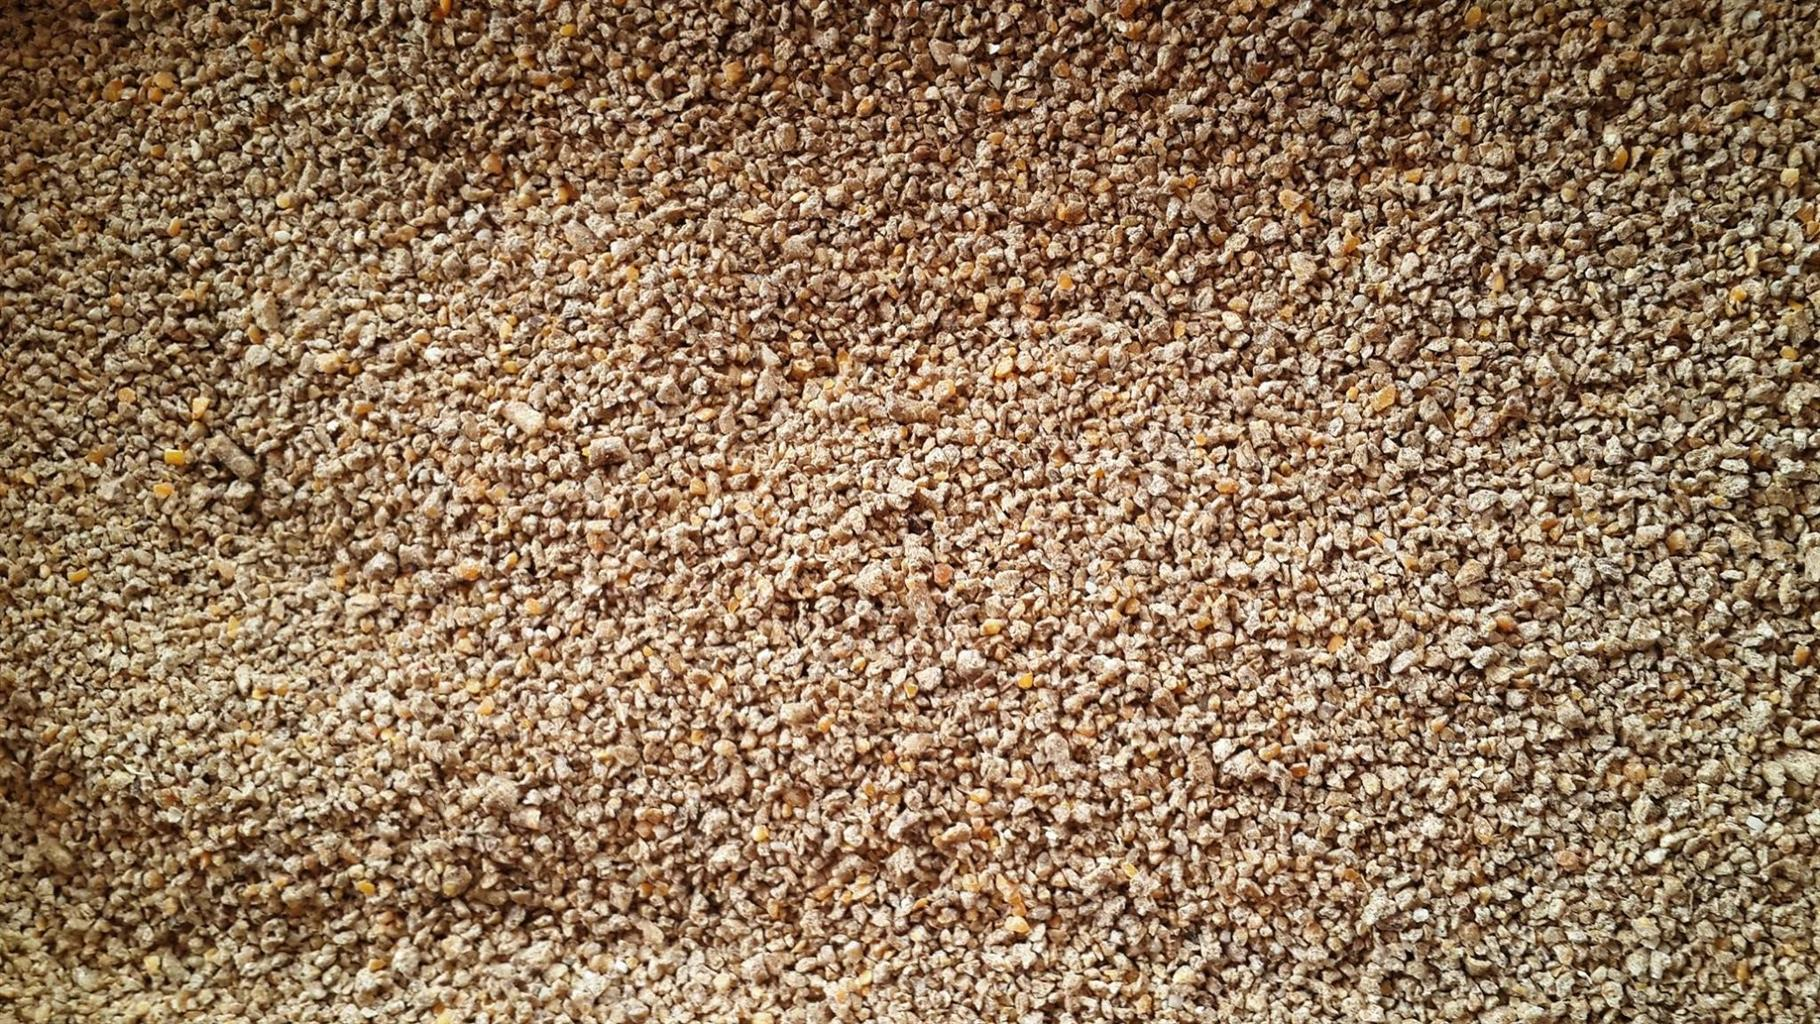 Broiler & Layer Chicken Feed